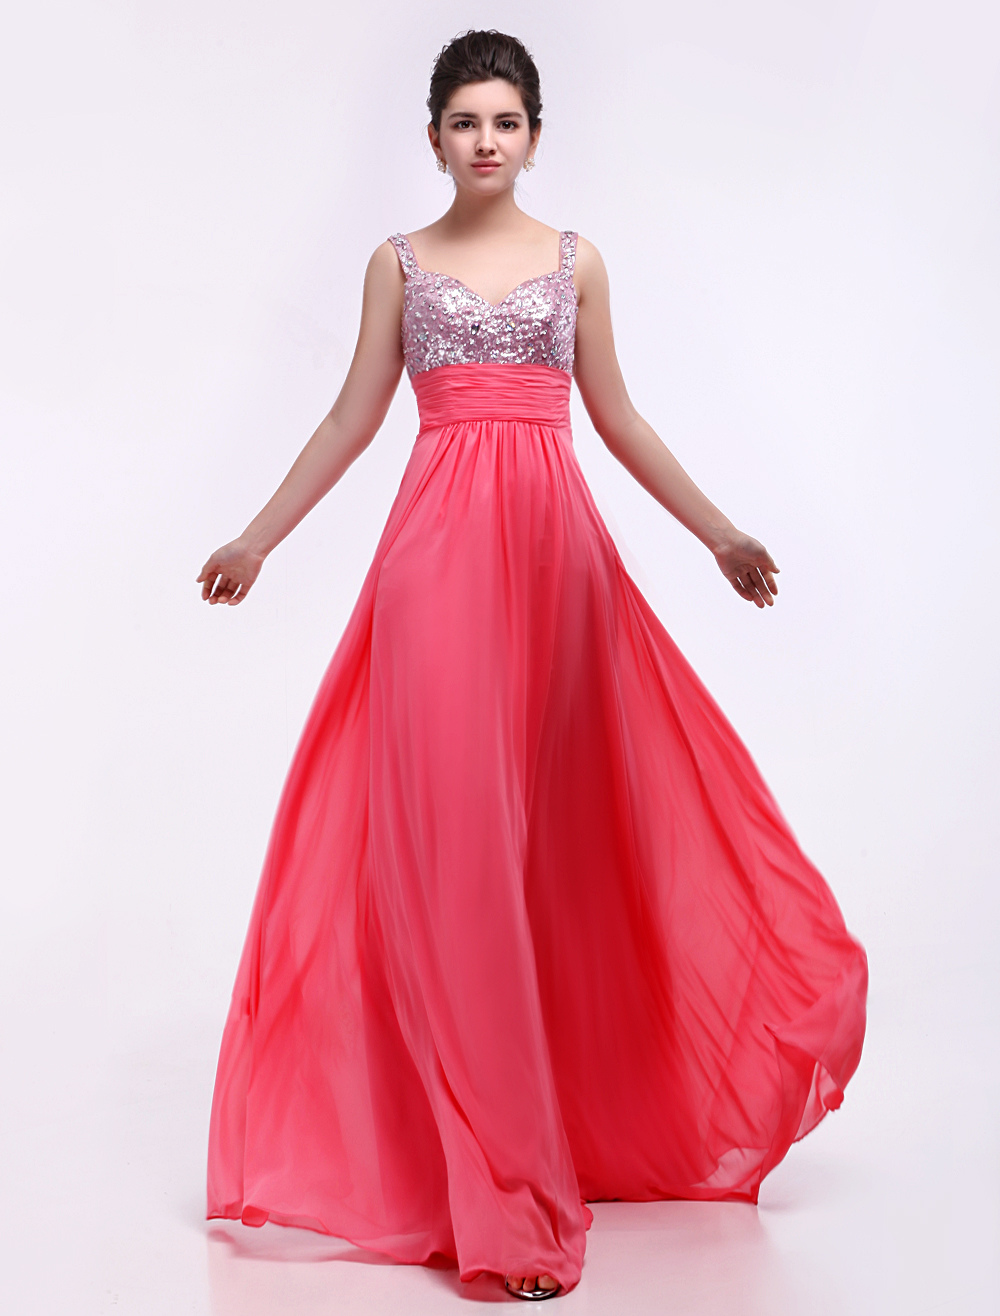 Candy Pink Sequnied Chiffon Prom Dress With Sweetheart Neck